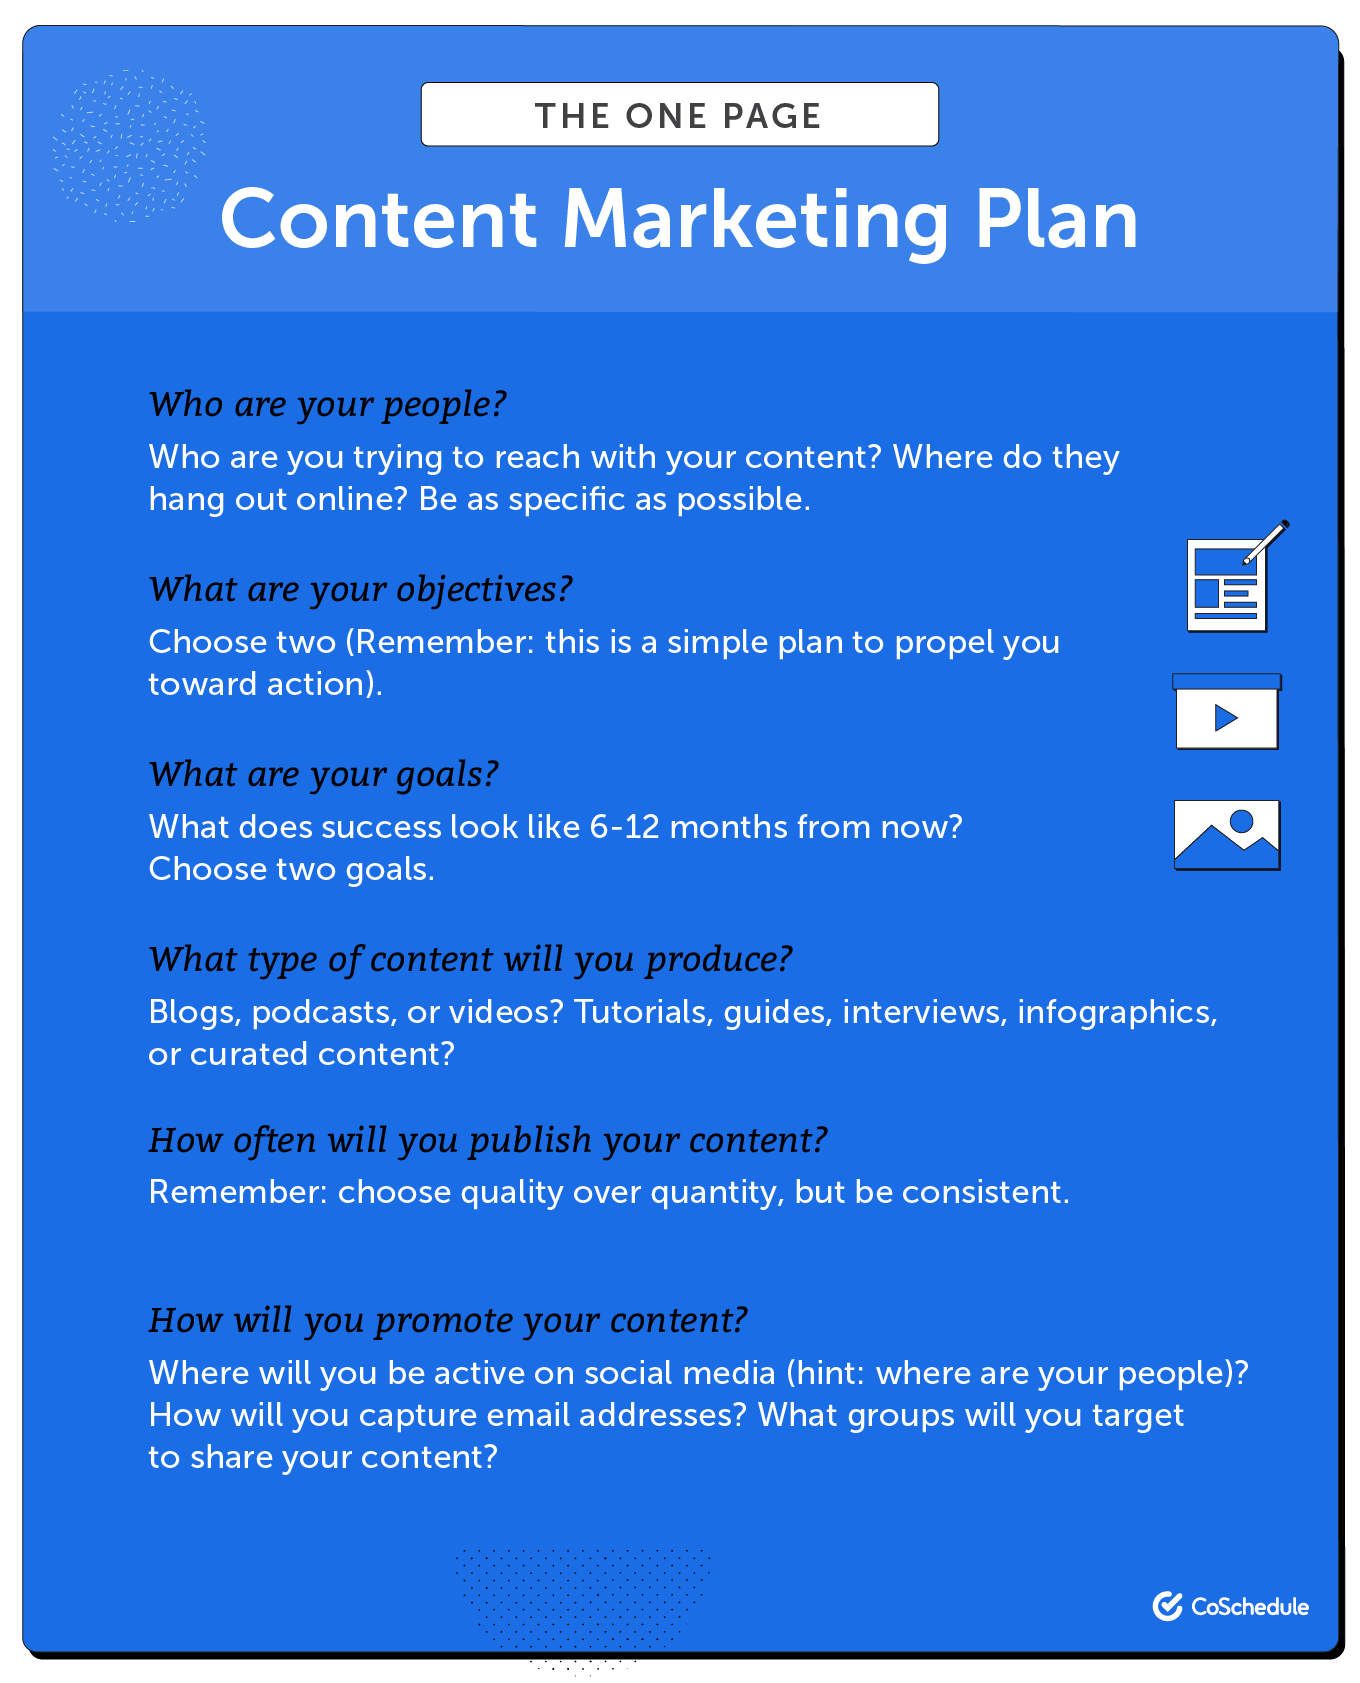 34 Marketing Plan Samples To Build Your Strategy With 7 Templates